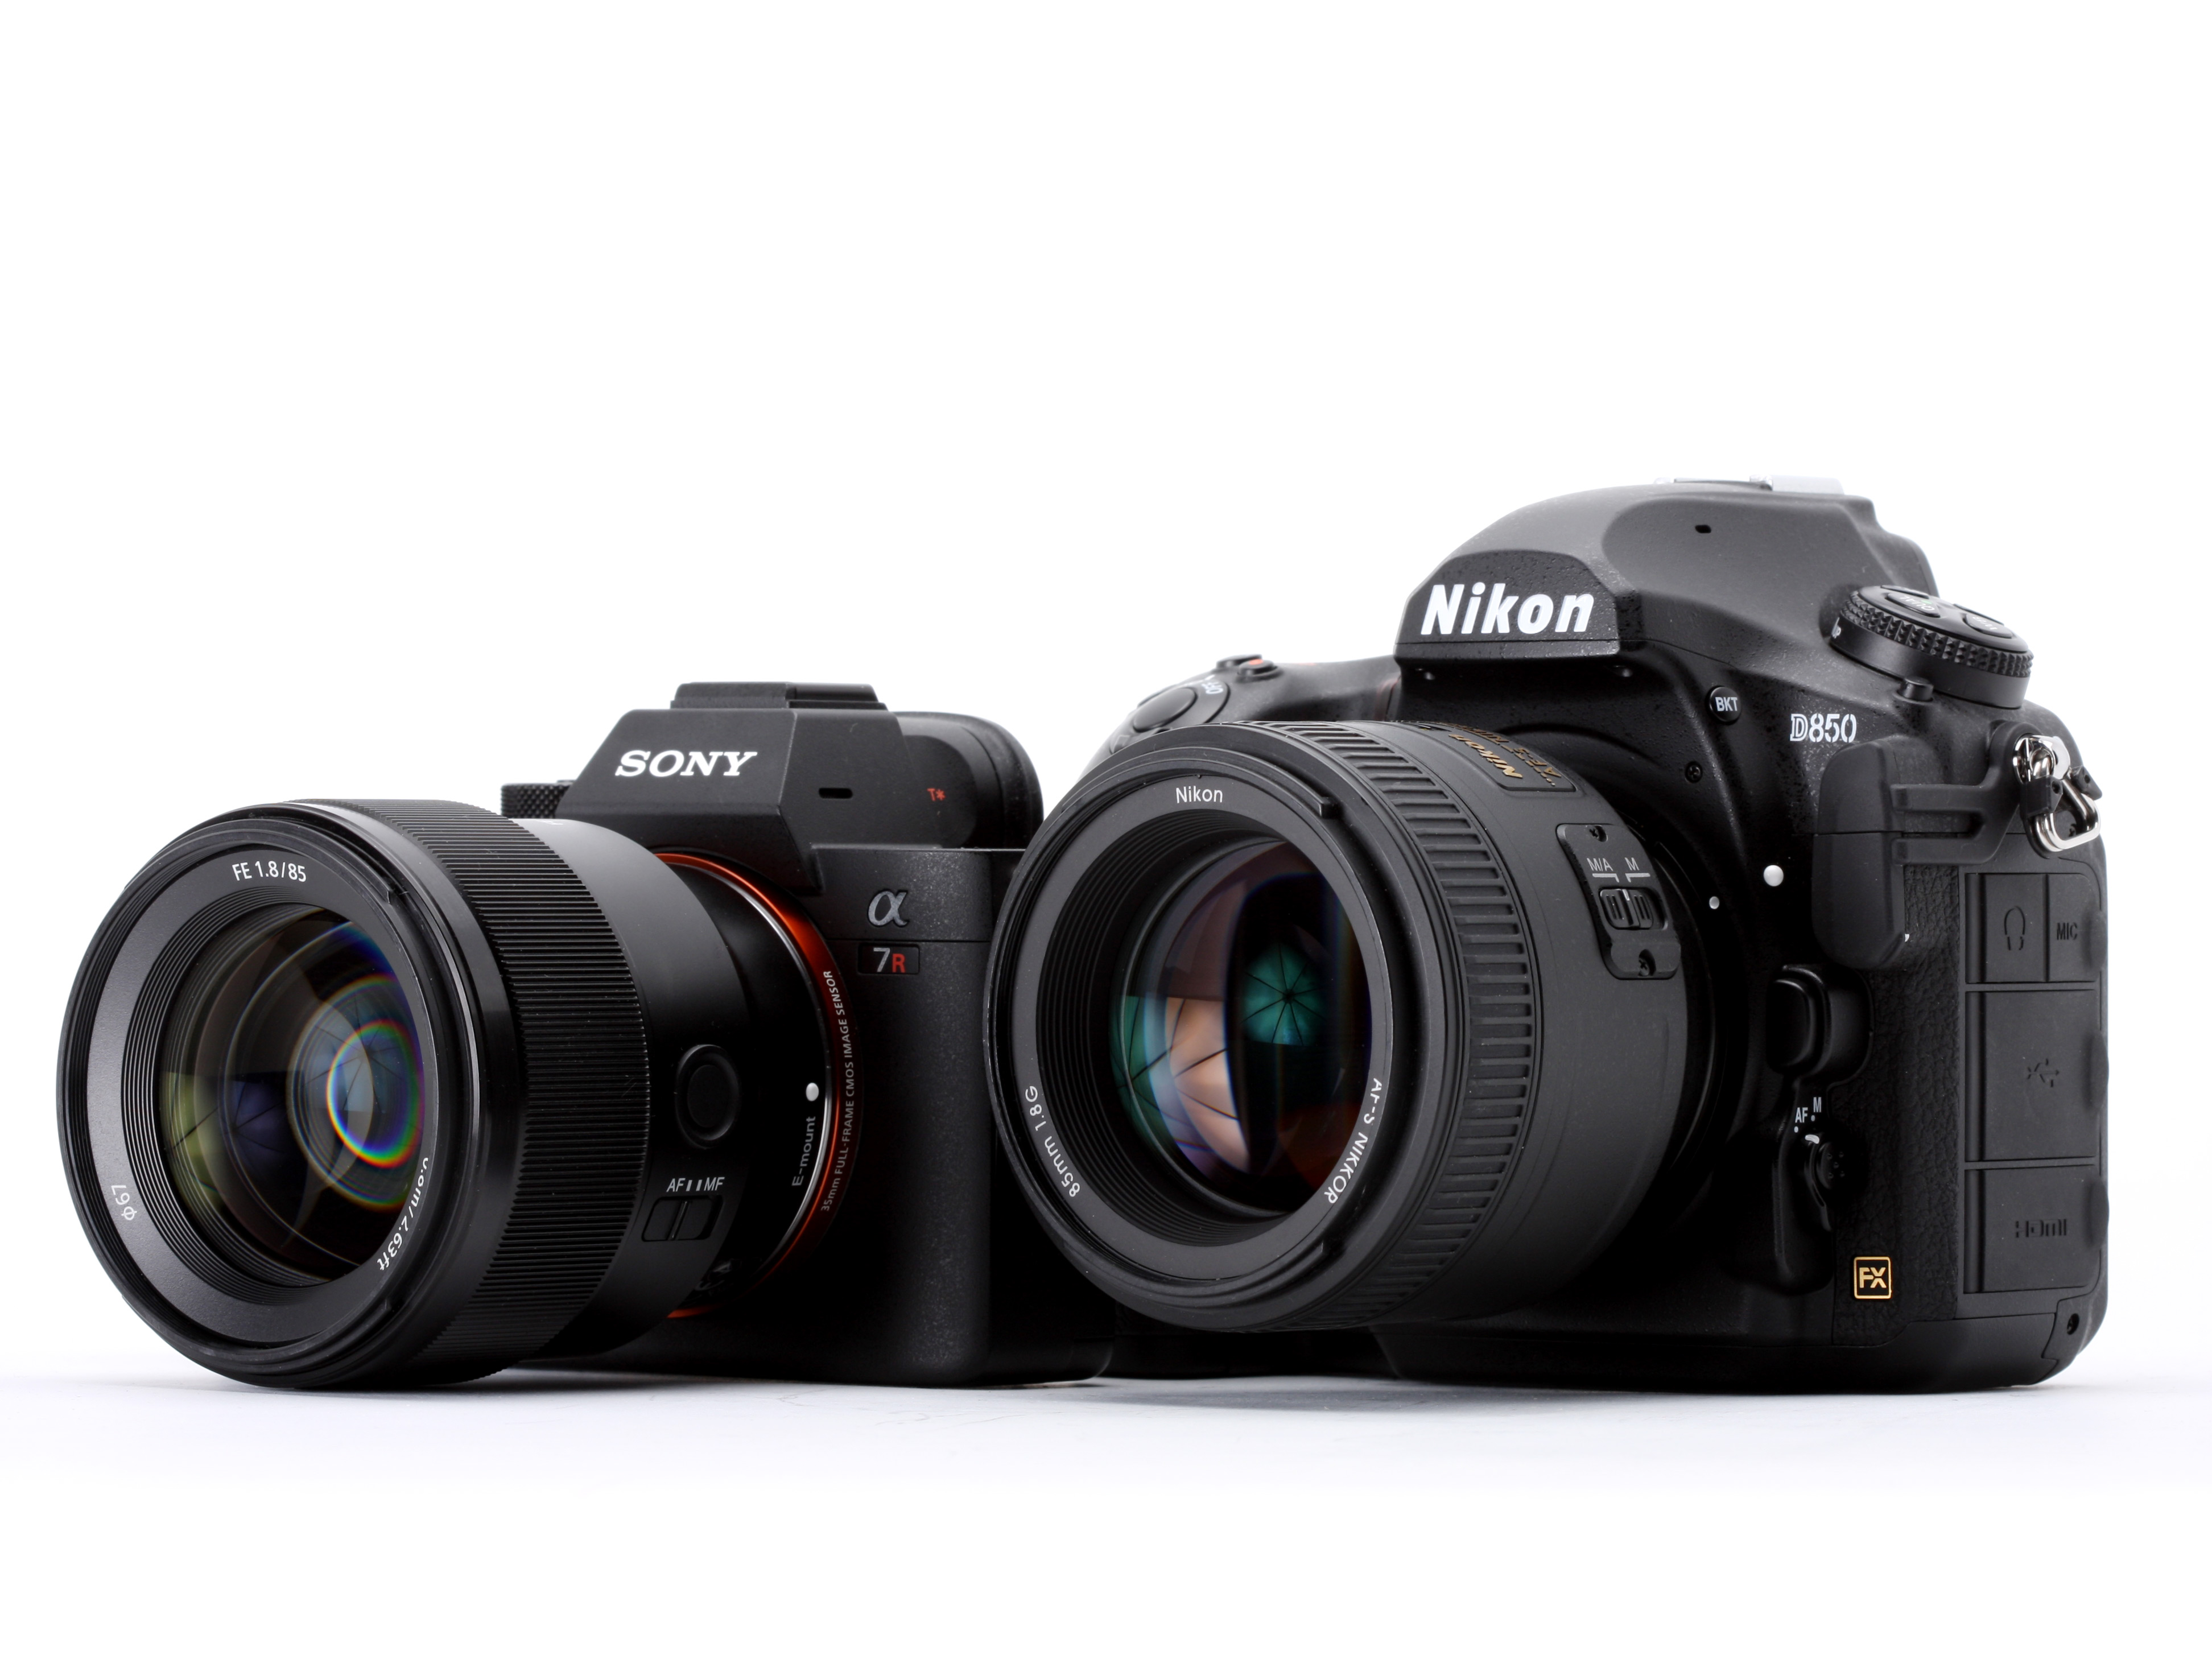 Nikon D850 Vs Sony A7r Iii Which Is Best Digital Photography Review 1100 Special Field World39s Largest Supplier Of Firearm Accessories